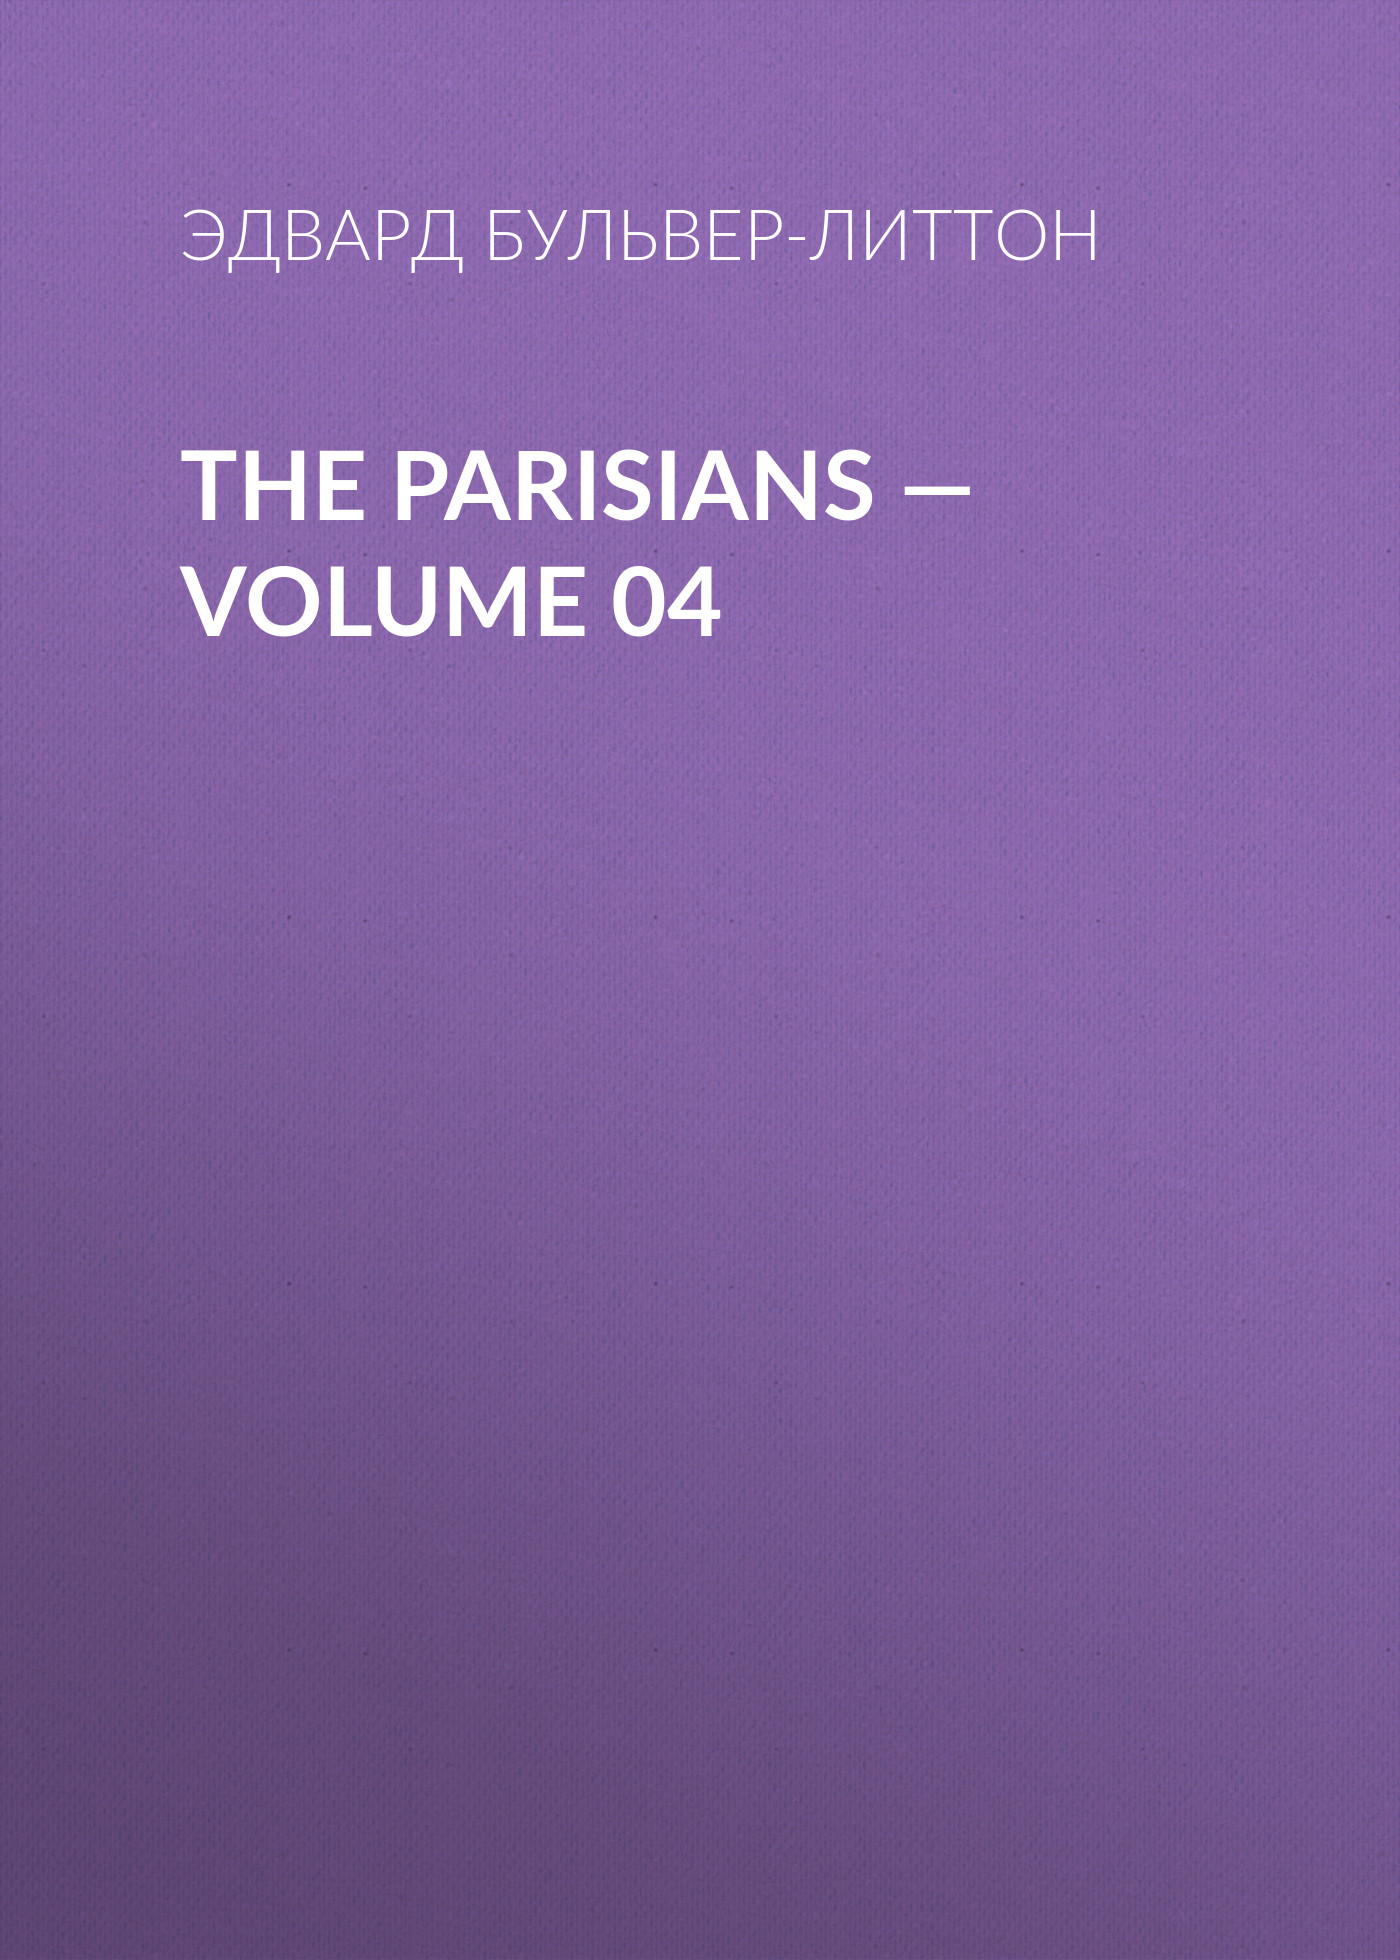 The Parisians — Volume 04